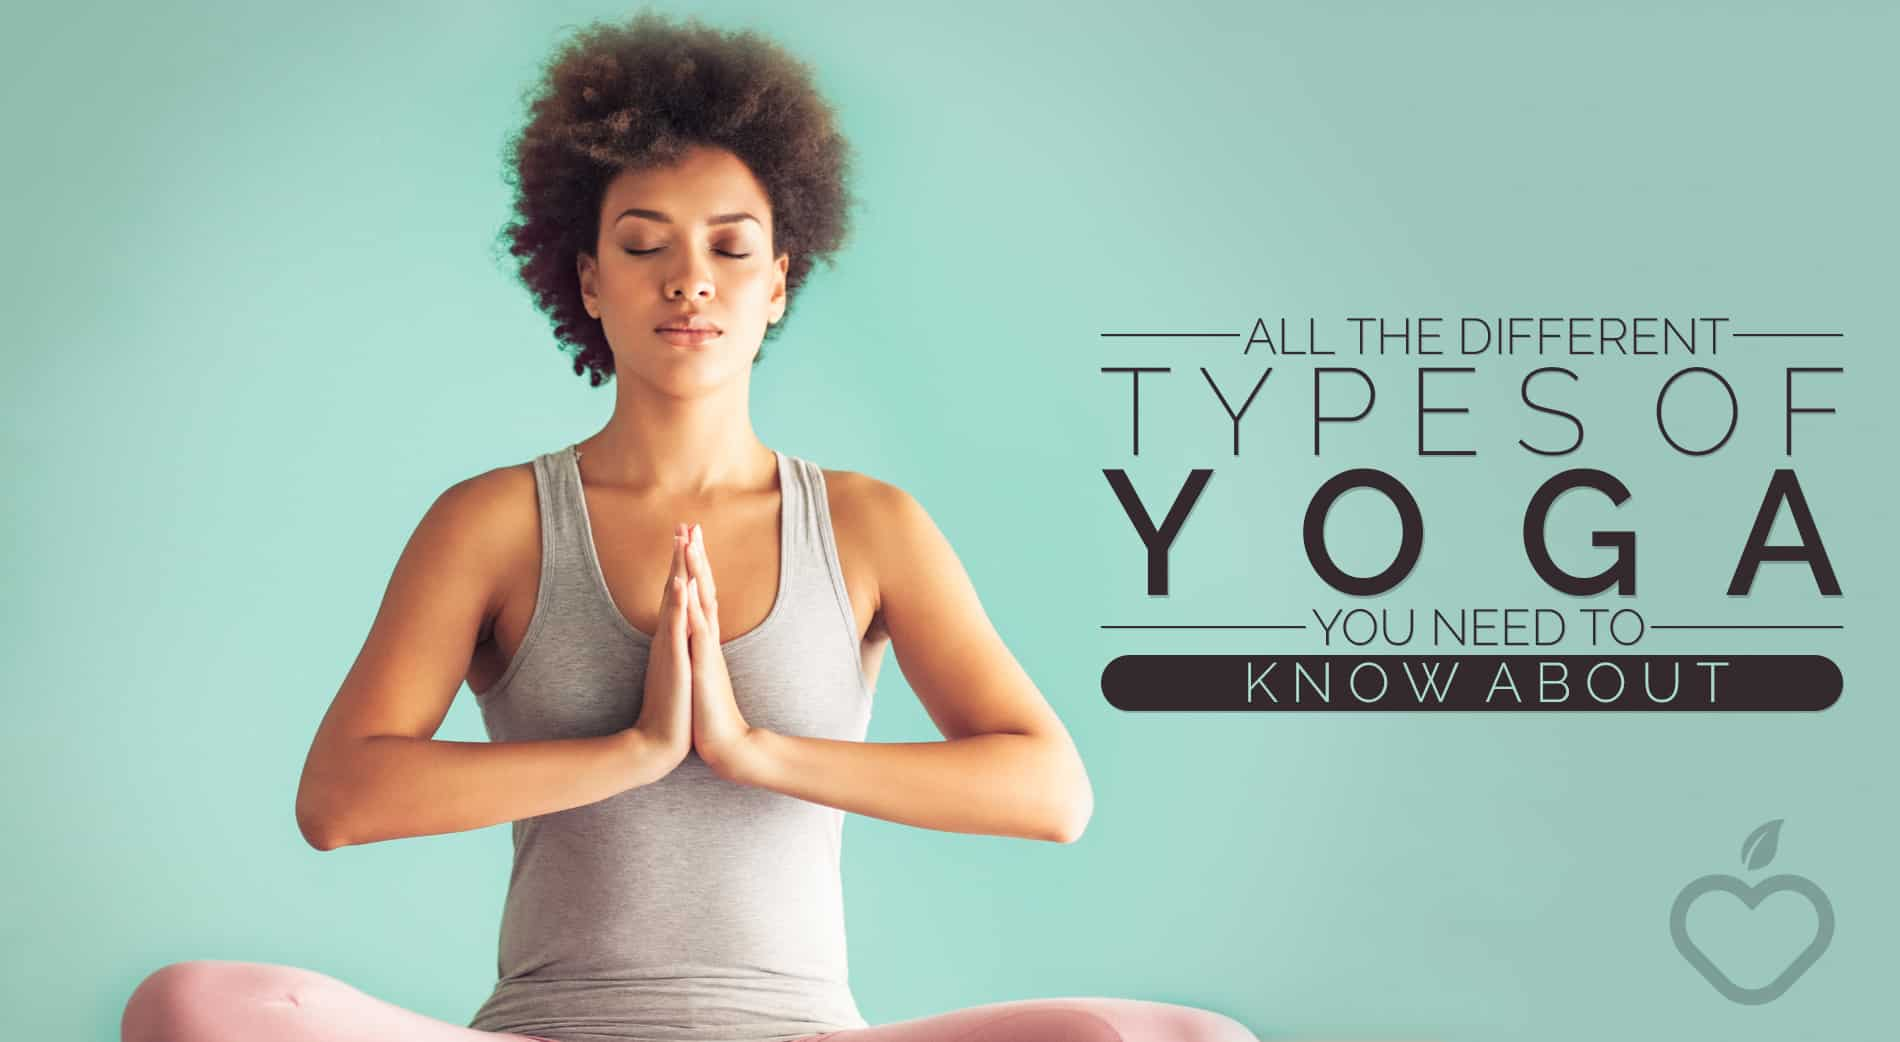 All The Different Types Of Yoga You Need To Know About